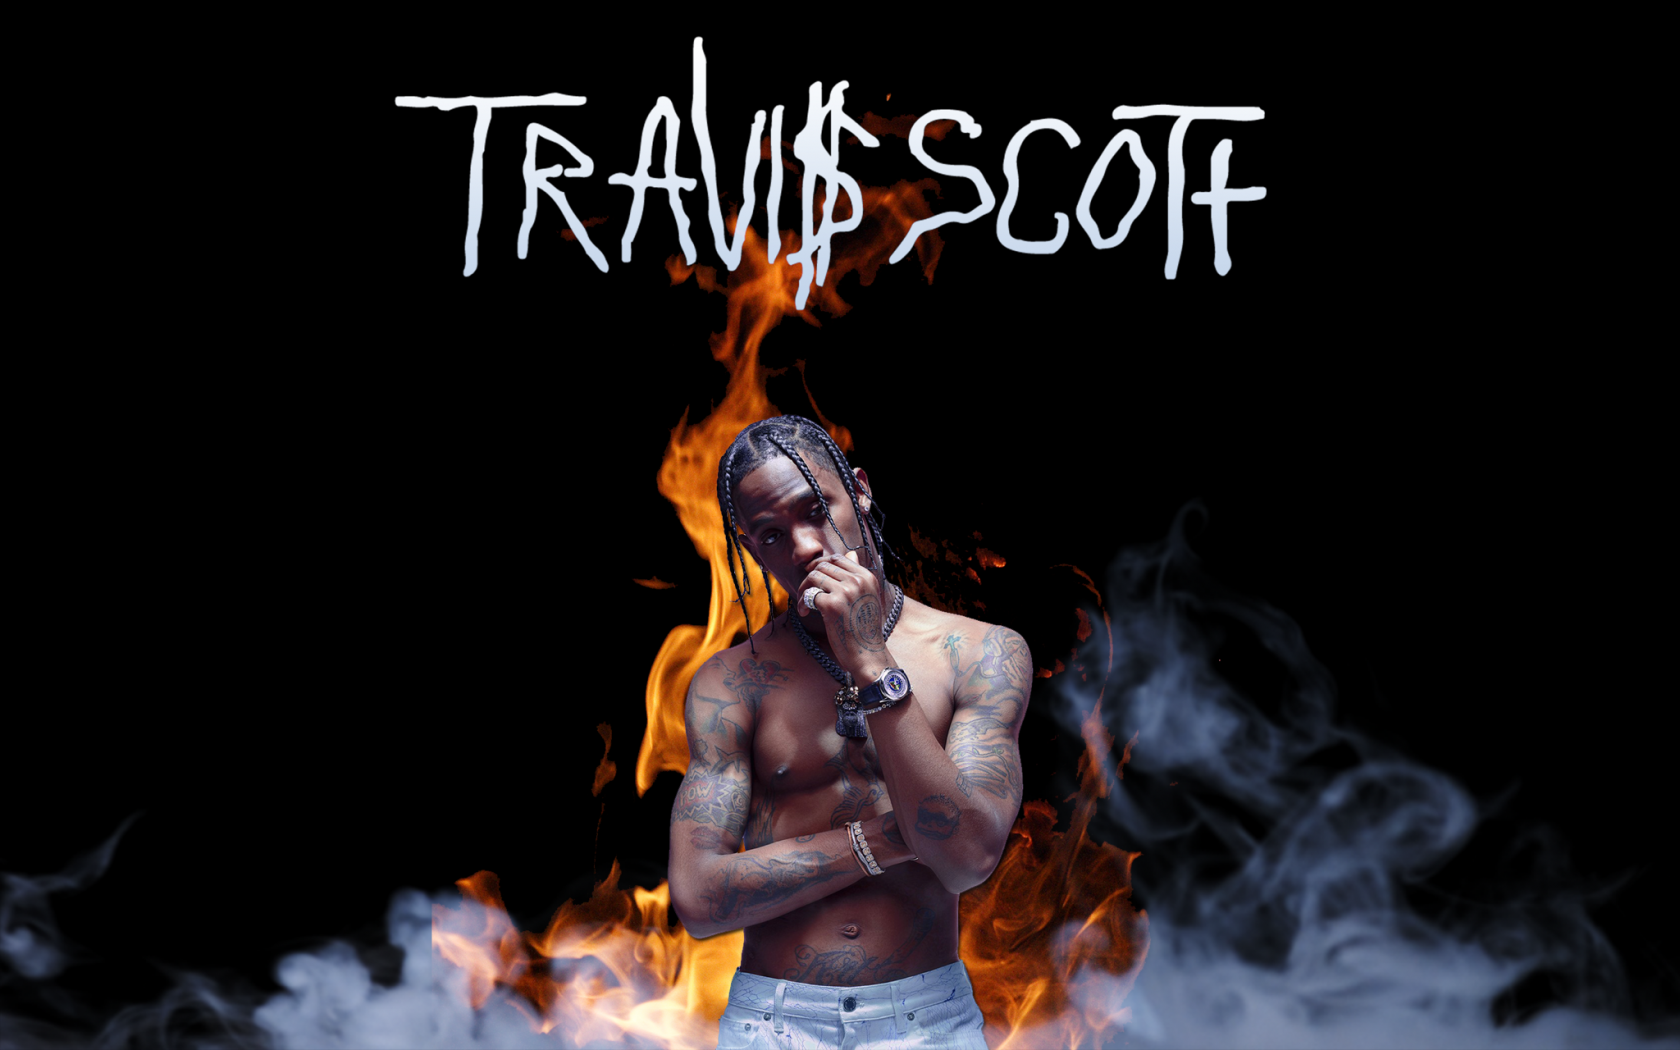 Free Download Travis Scott Minimalistic Wallpaper